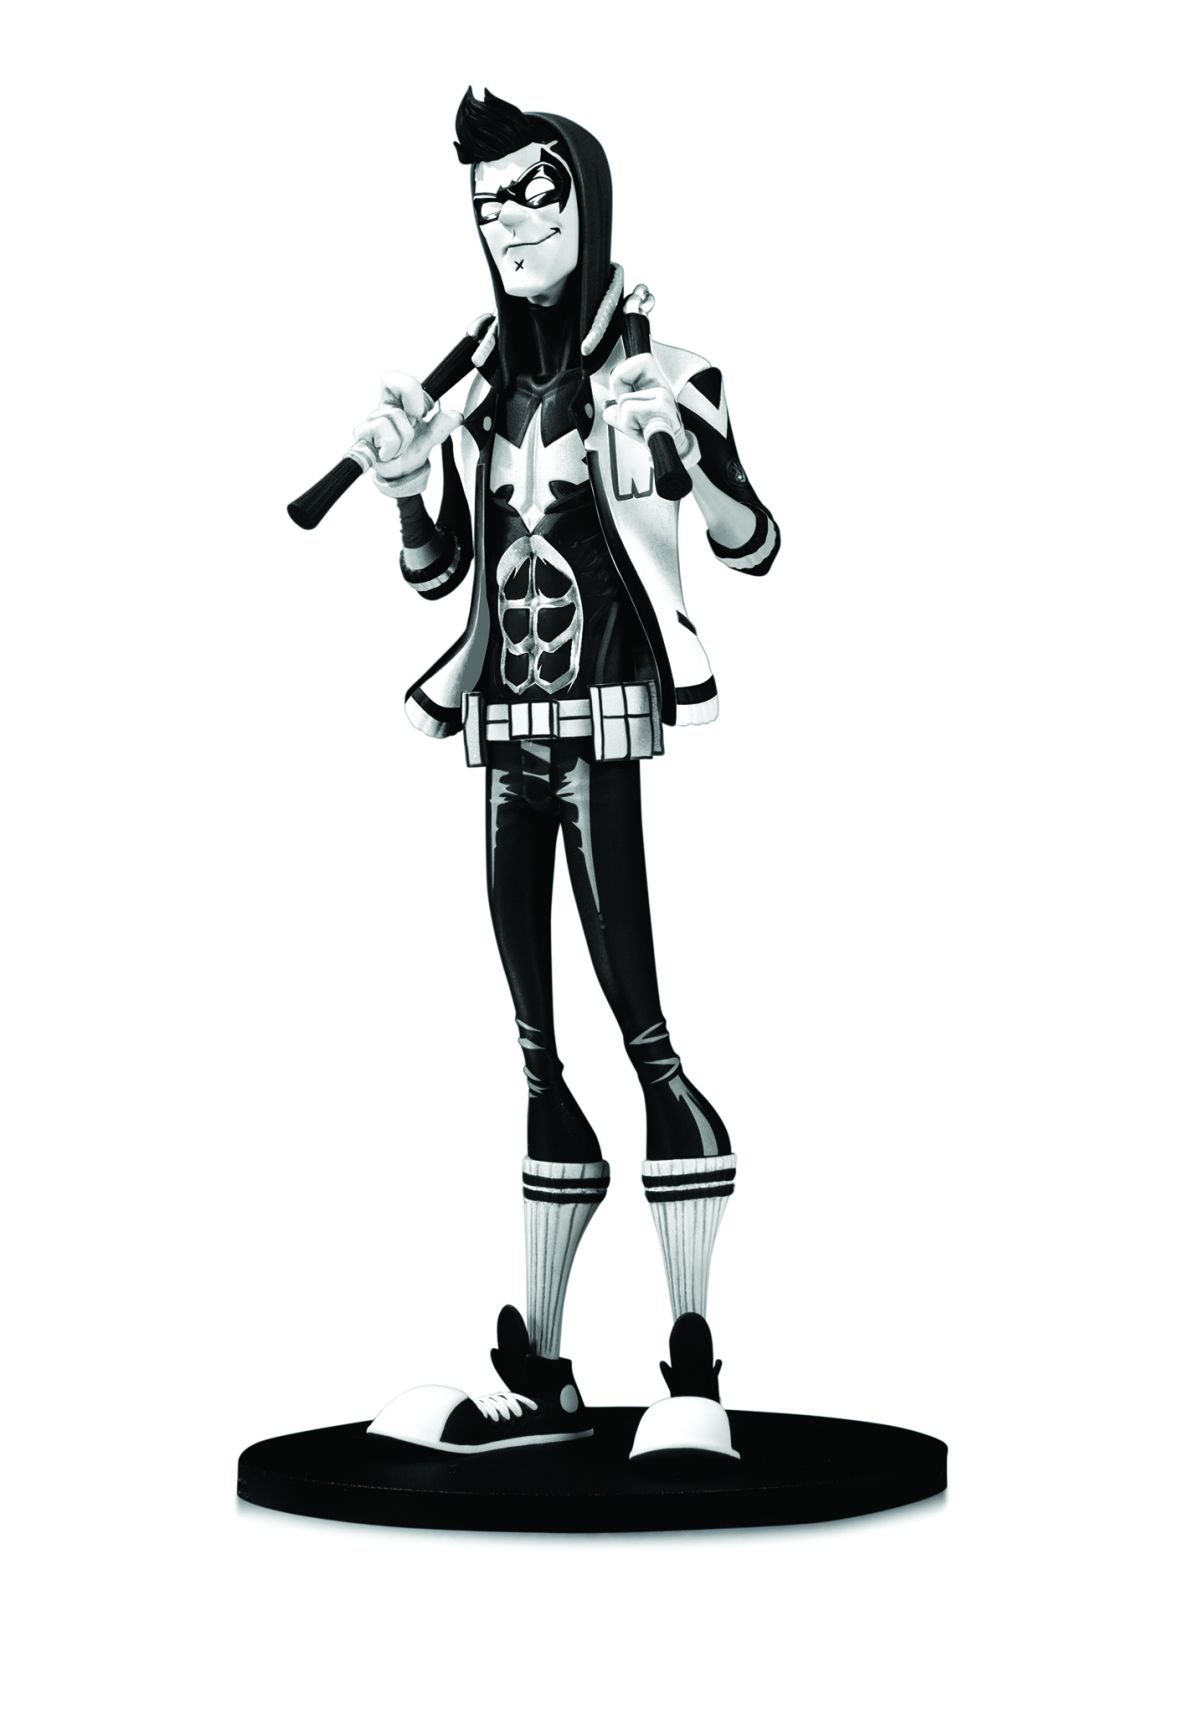 """DC ARTISTS ALLEY: NIGHTWING BY HAINANU """"NOOLIGAN"""" SAULQUE BLACK AND WHITE VARIANT FIGURE DESIGNER VINYL FIGURE"""